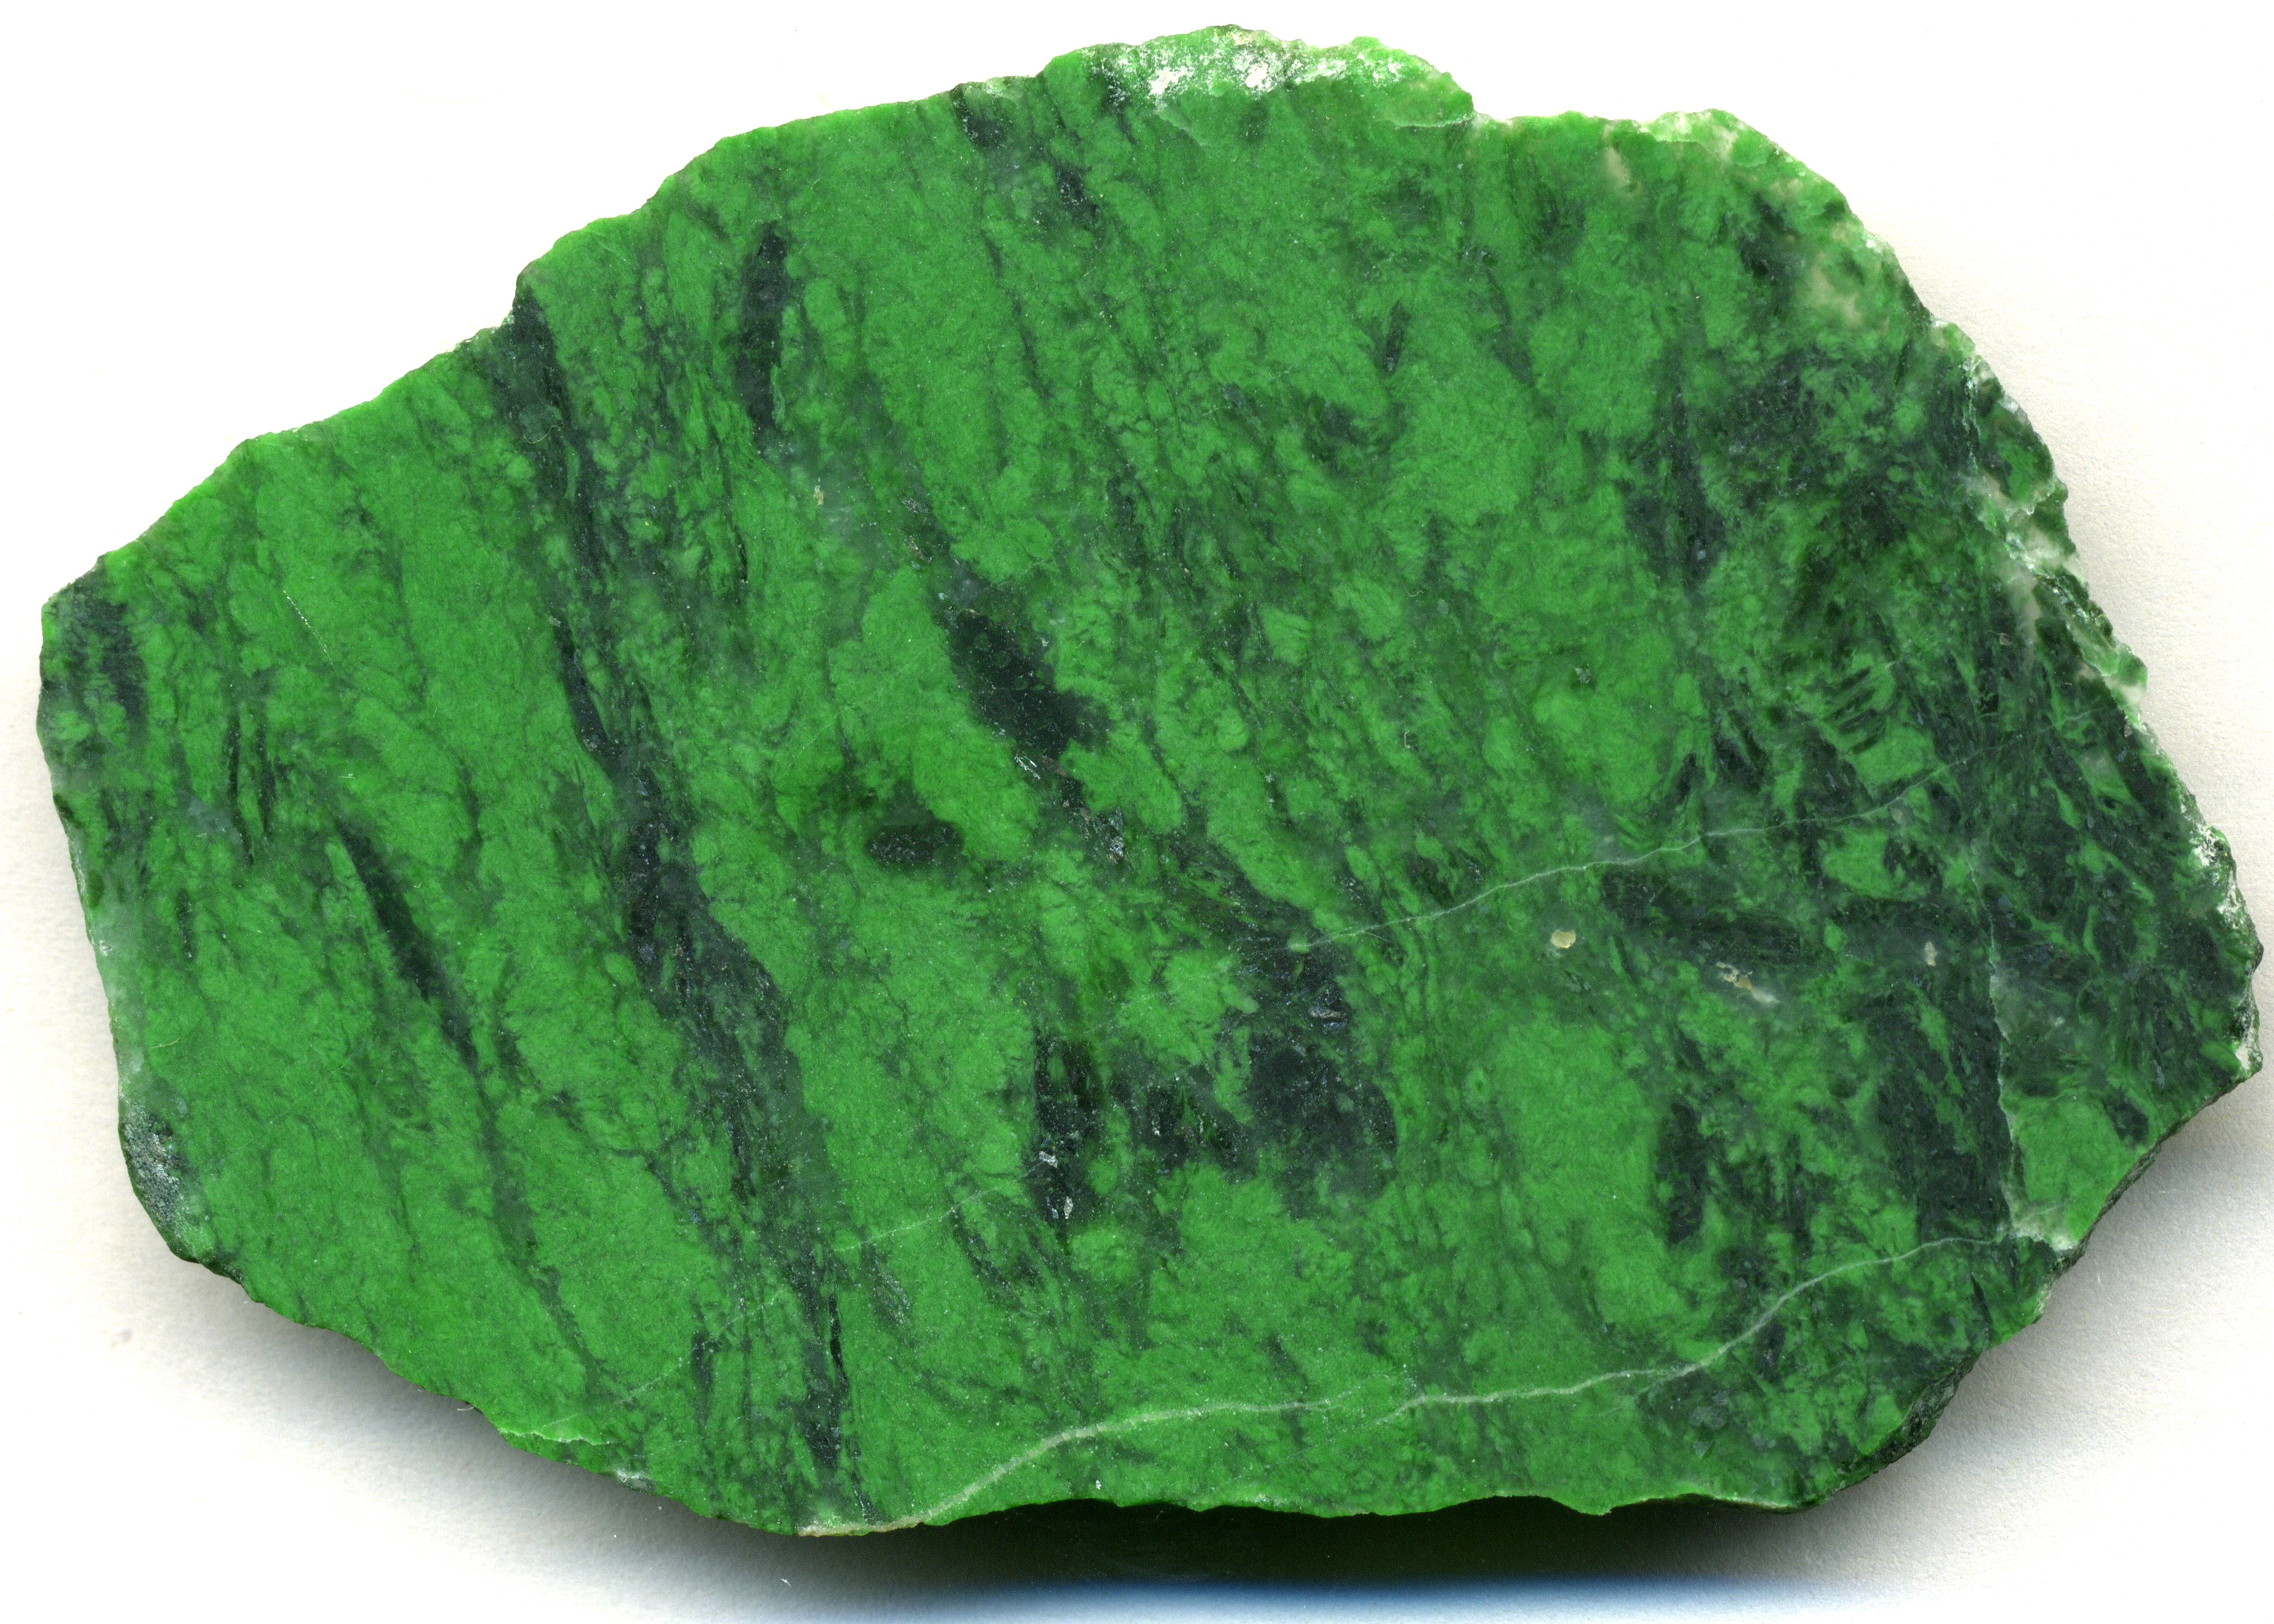 Jade has a hardness of 6 to 7 on the Mohs scale. Jade is actually the name of two different minerals – Nephrite and Jadeite.  -- Jade Stone Facts